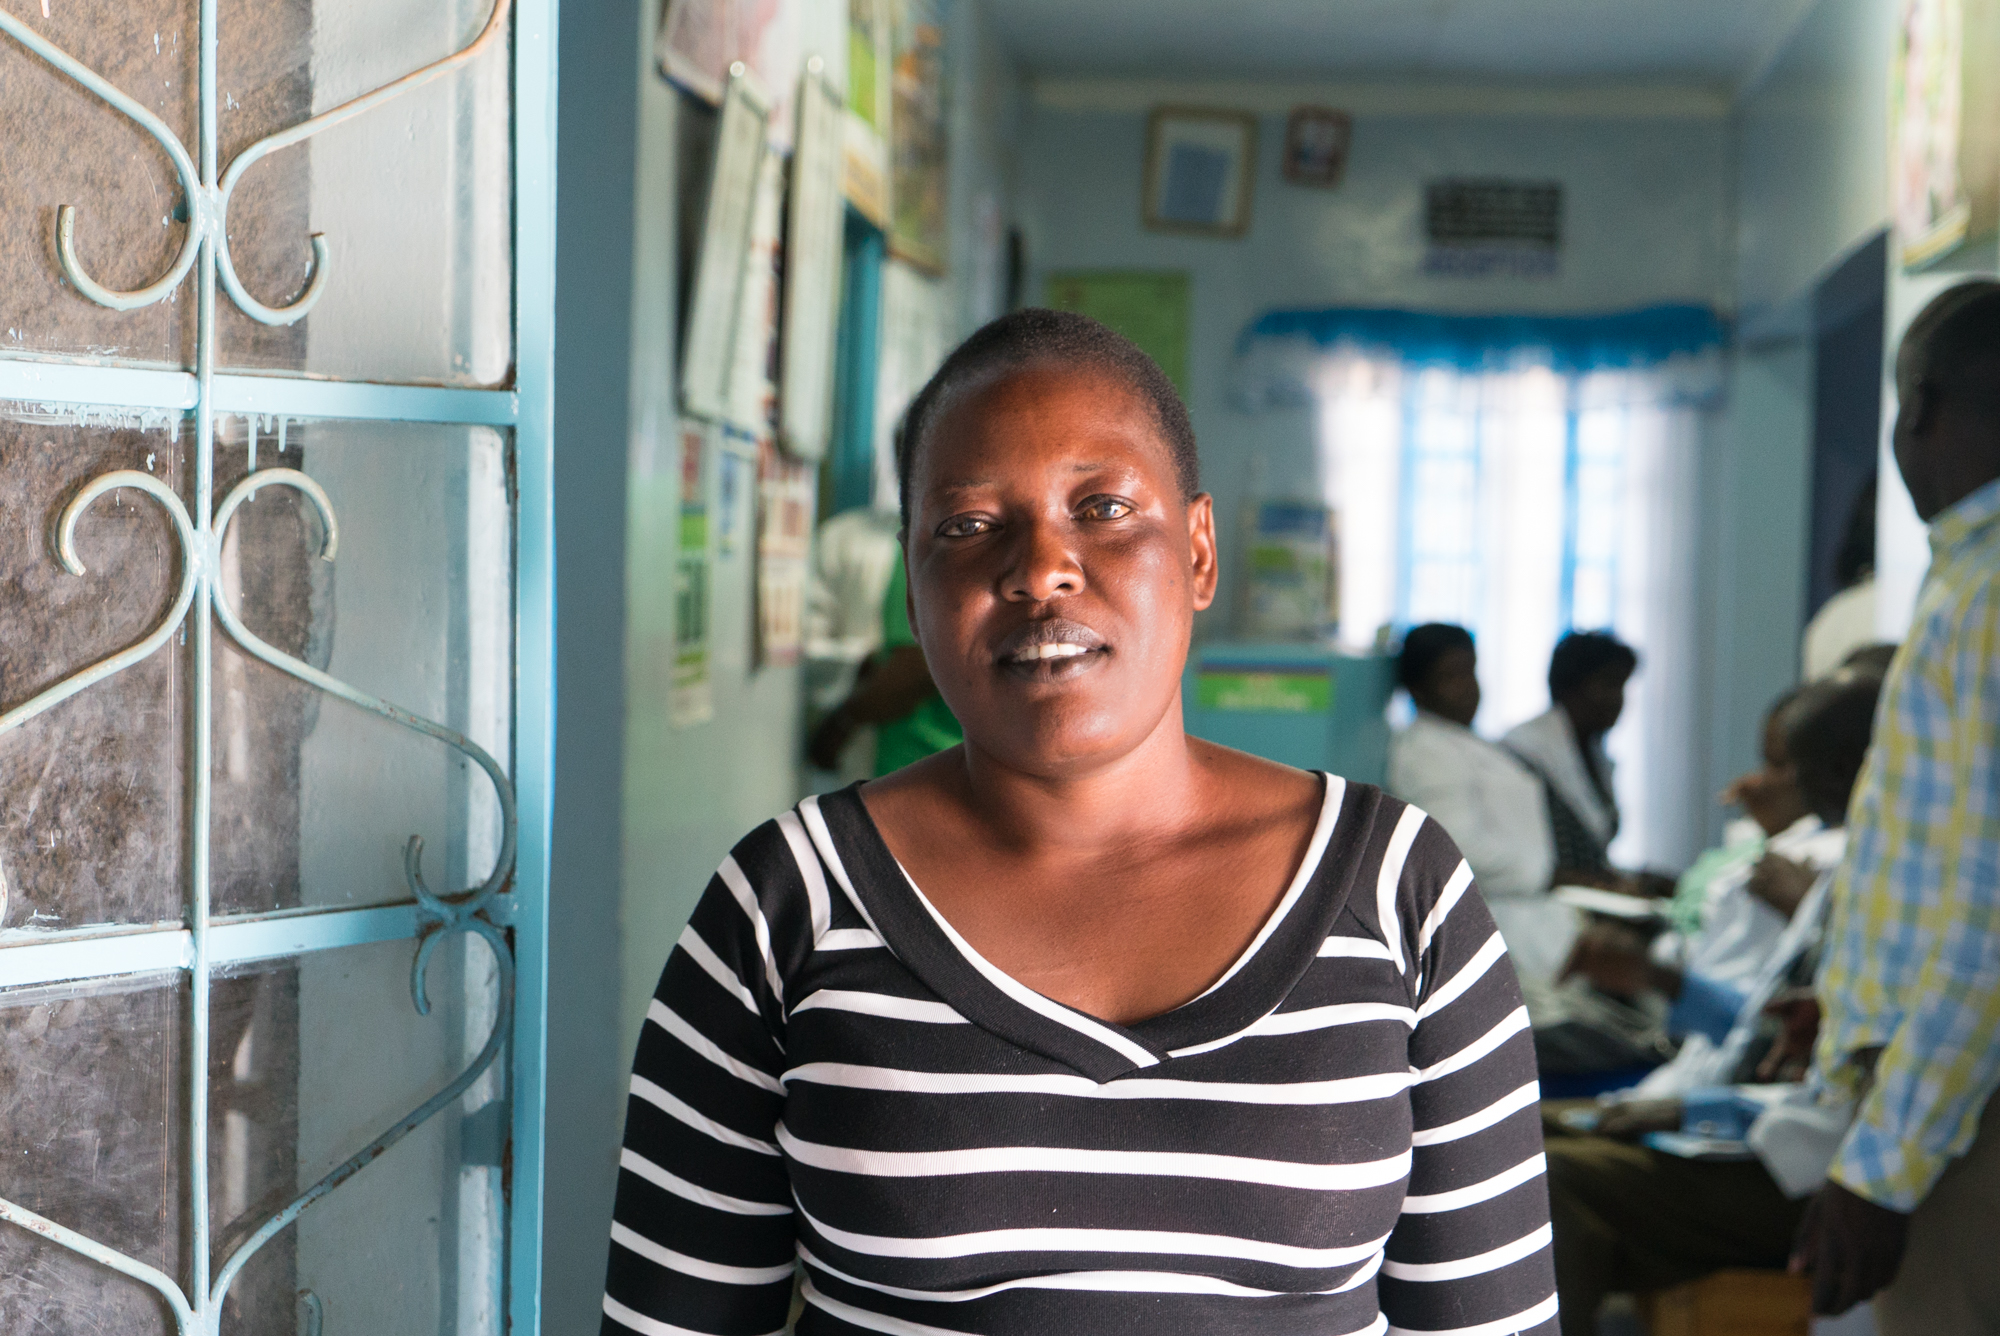 Highlights from our interview with Monica, a community health worker in Maniata, Kisumu.